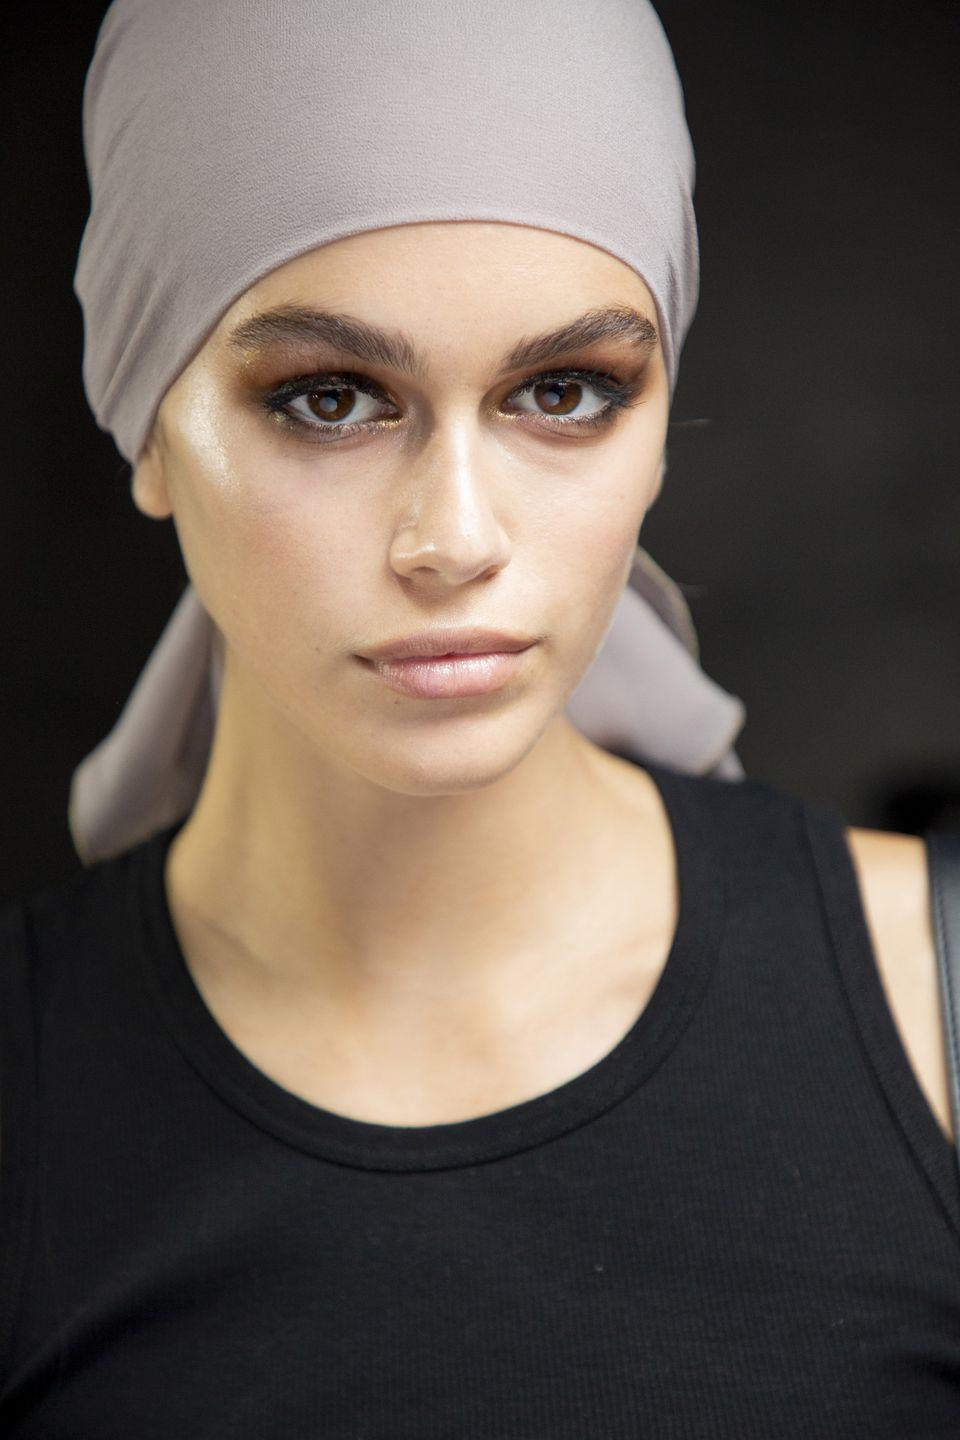 """<p>Makeup artist Diane Kendal created a golden smoky eye for the '70s-inspired Tom Ford show. Her team of makeup artists meticulously blended the eyeshadow and liner until the look was hazy and glam.</p><p><strong>Tom Ford</strong> Eye Color Quad in Golden Mink, $88, <a rel=""""nofollow noopener"""" href=""""https://www.sephora.com/product/eye-color-quad-P422568?skuId=1987718"""" target=""""_blank"""" data-ylk=""""slk:sephora.com"""" class=""""link rapid-noclick-resp"""">sephora.com</a>.</p><p><a rel=""""nofollow noopener"""" href=""""https://www.sephora.com/product/eye-color-quad-P422568?skuId=1987718"""" target=""""_blank"""" data-ylk=""""slk:SHOP"""" class=""""link rapid-noclick-resp"""">SHOP</a><br></p>"""